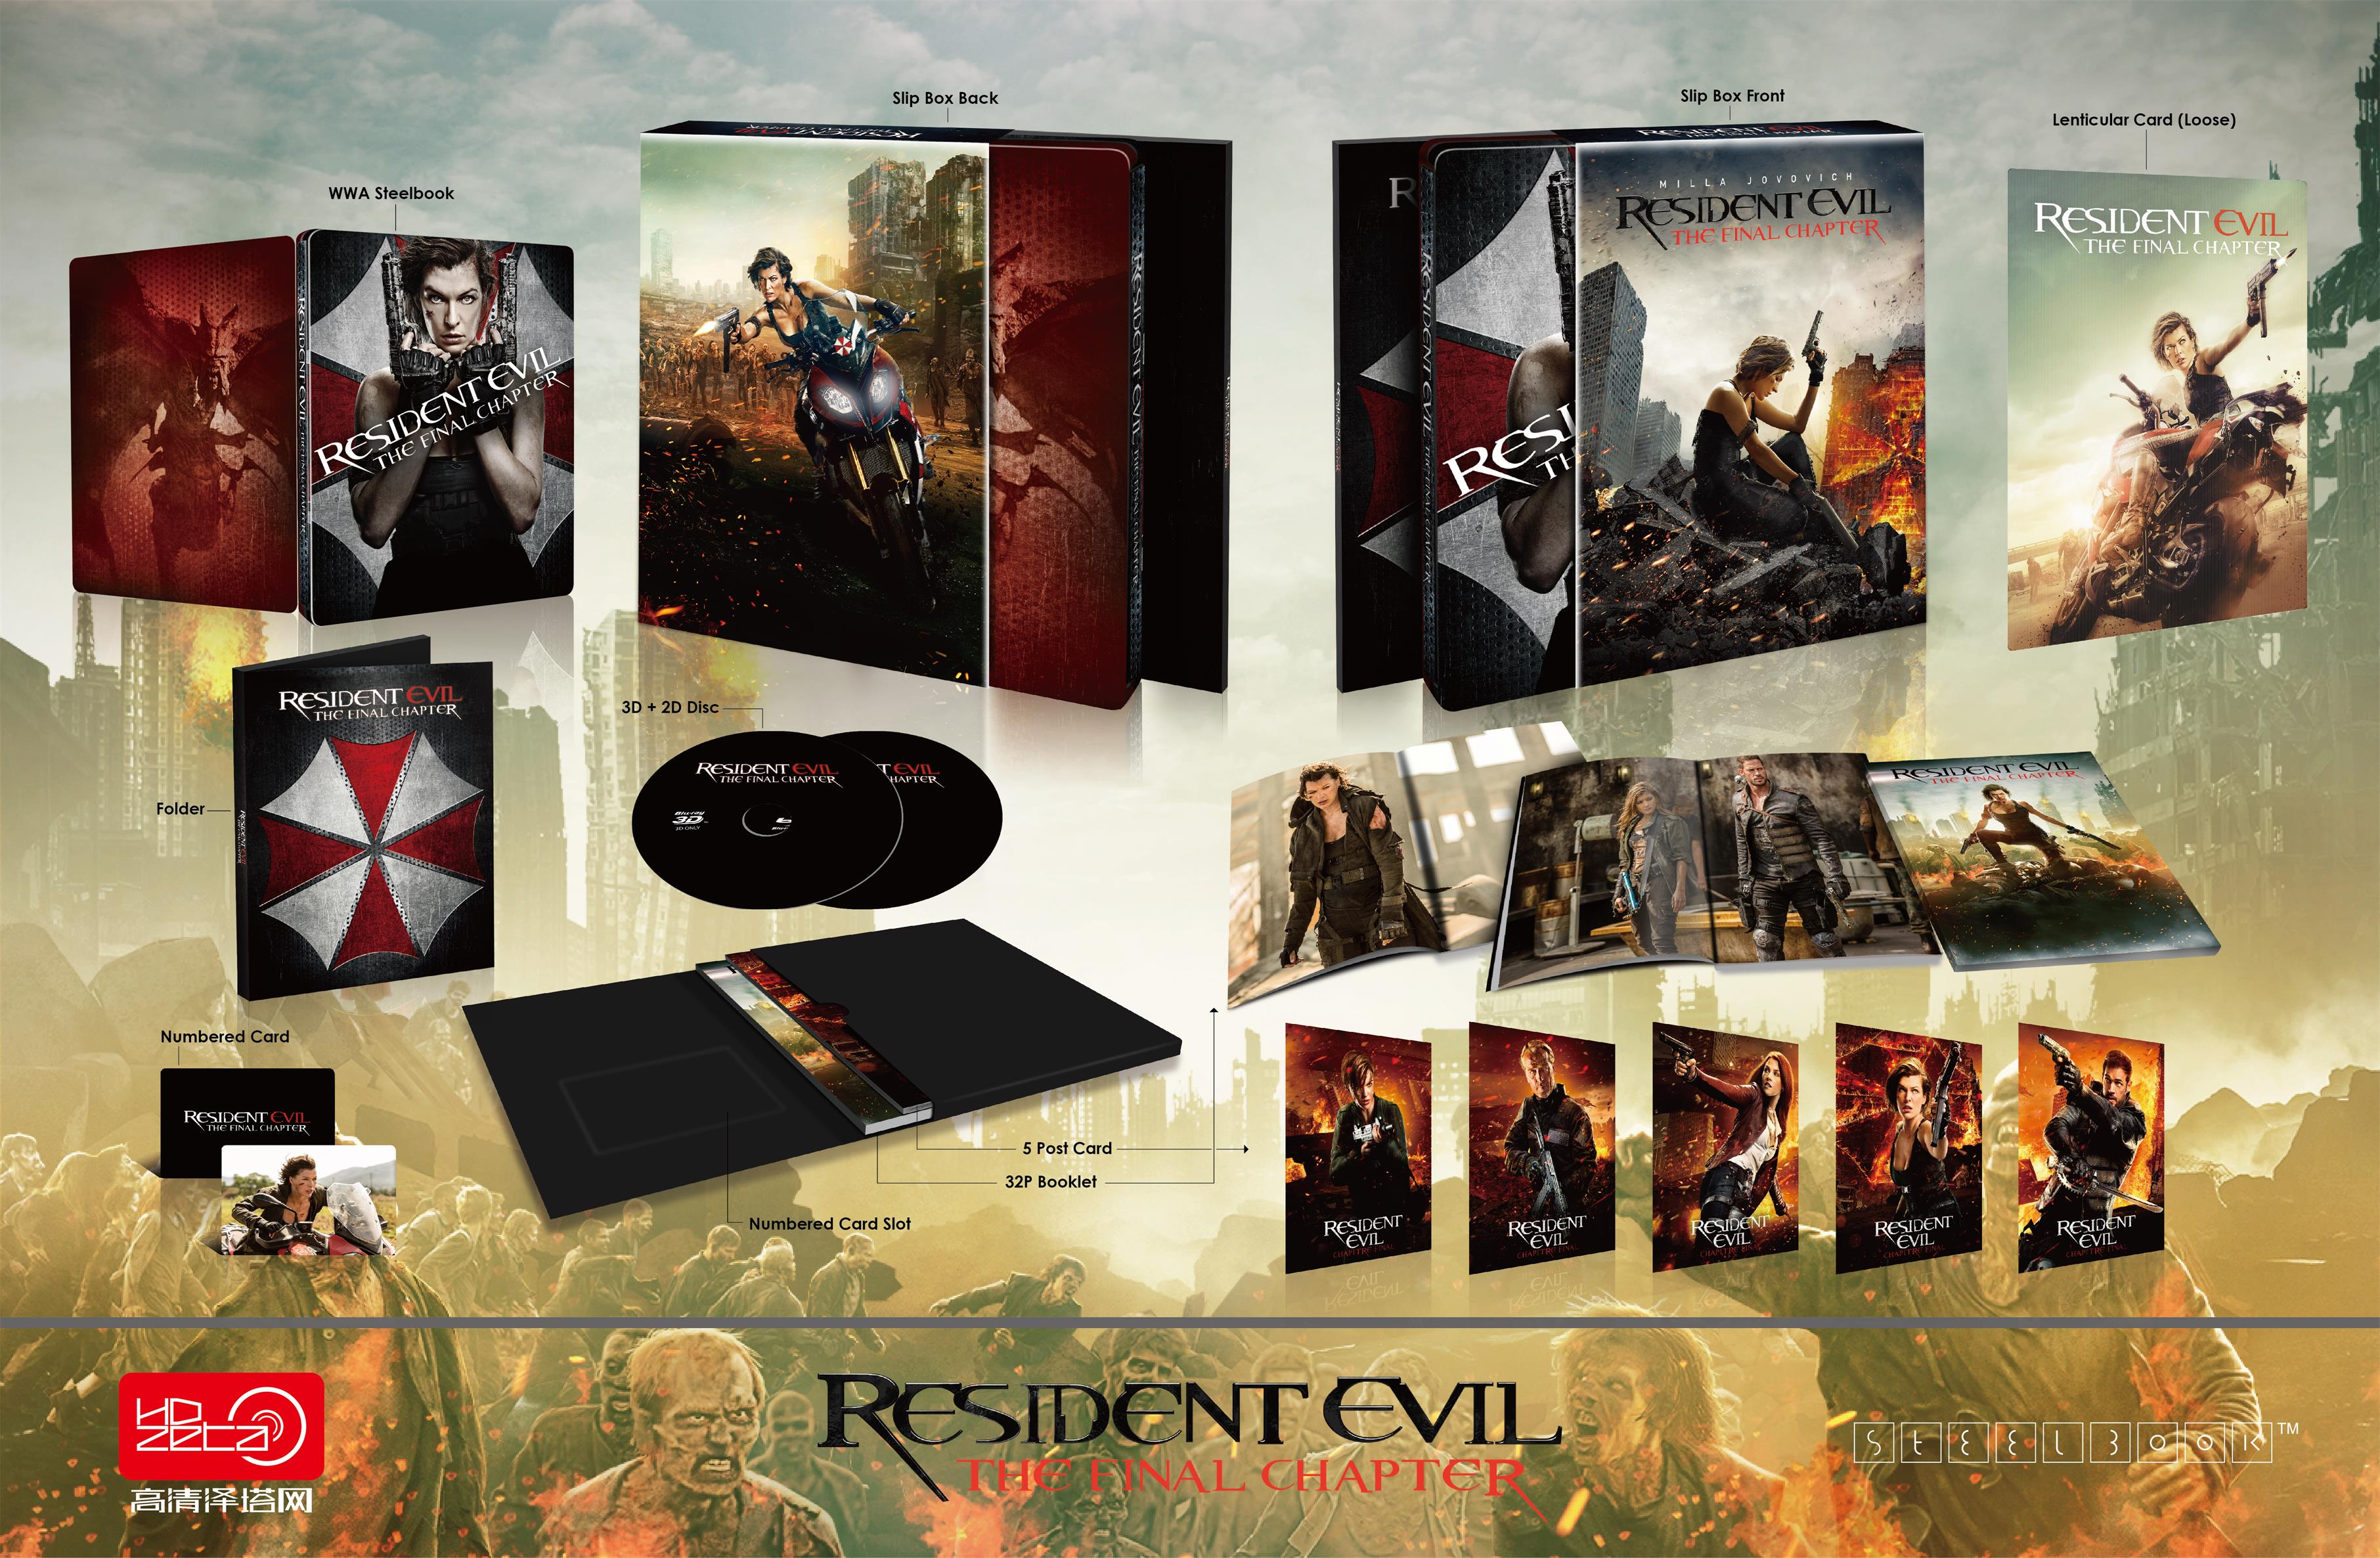 Resident Evil:Final Chapter HDzeta Silver Label Special Edition